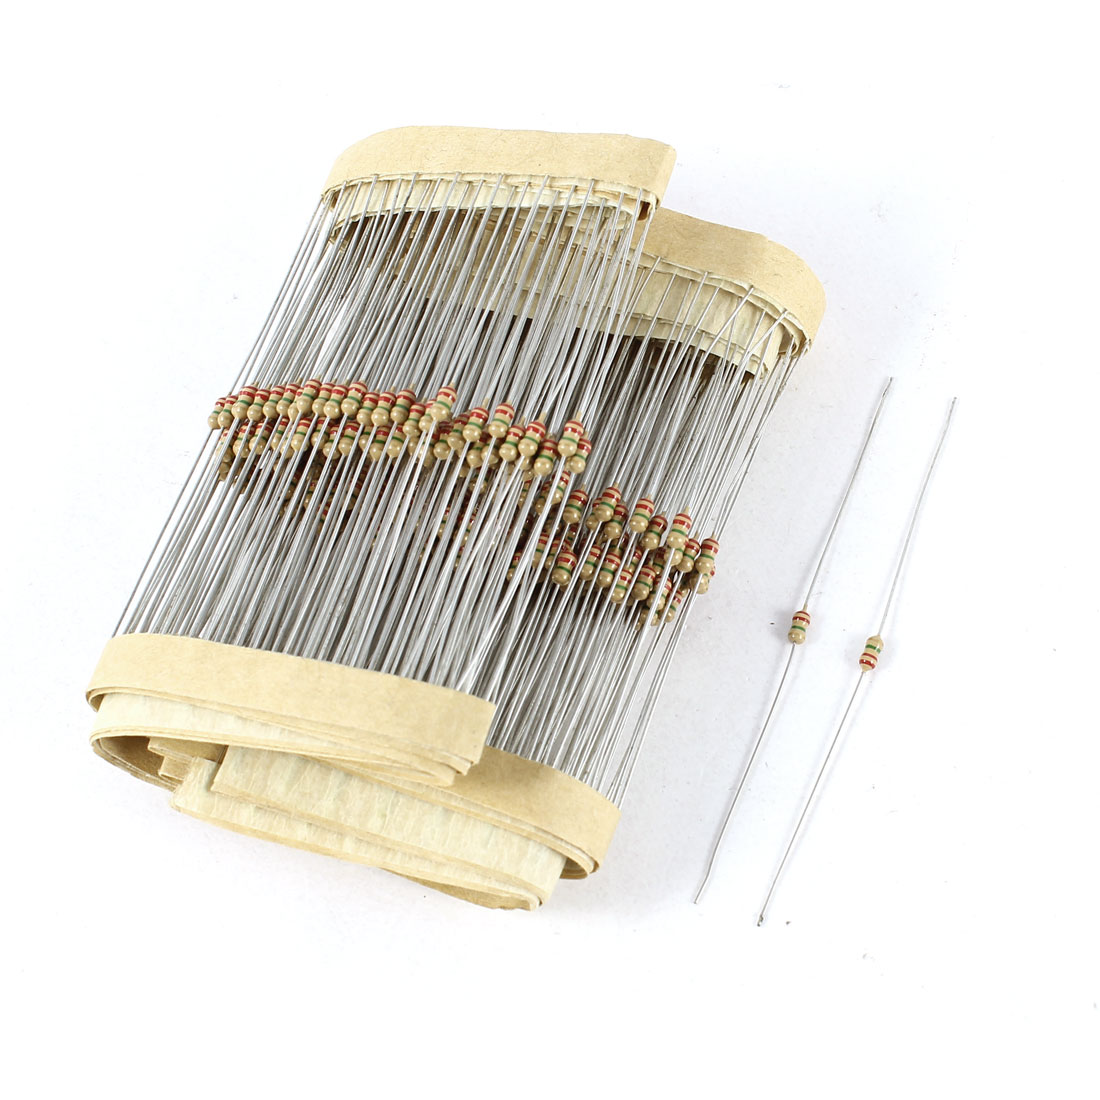 300 Pcs Axial Lead Through Hole 1/6W 1/8W 1% 2.2M Ohm Carbon Film Resistors